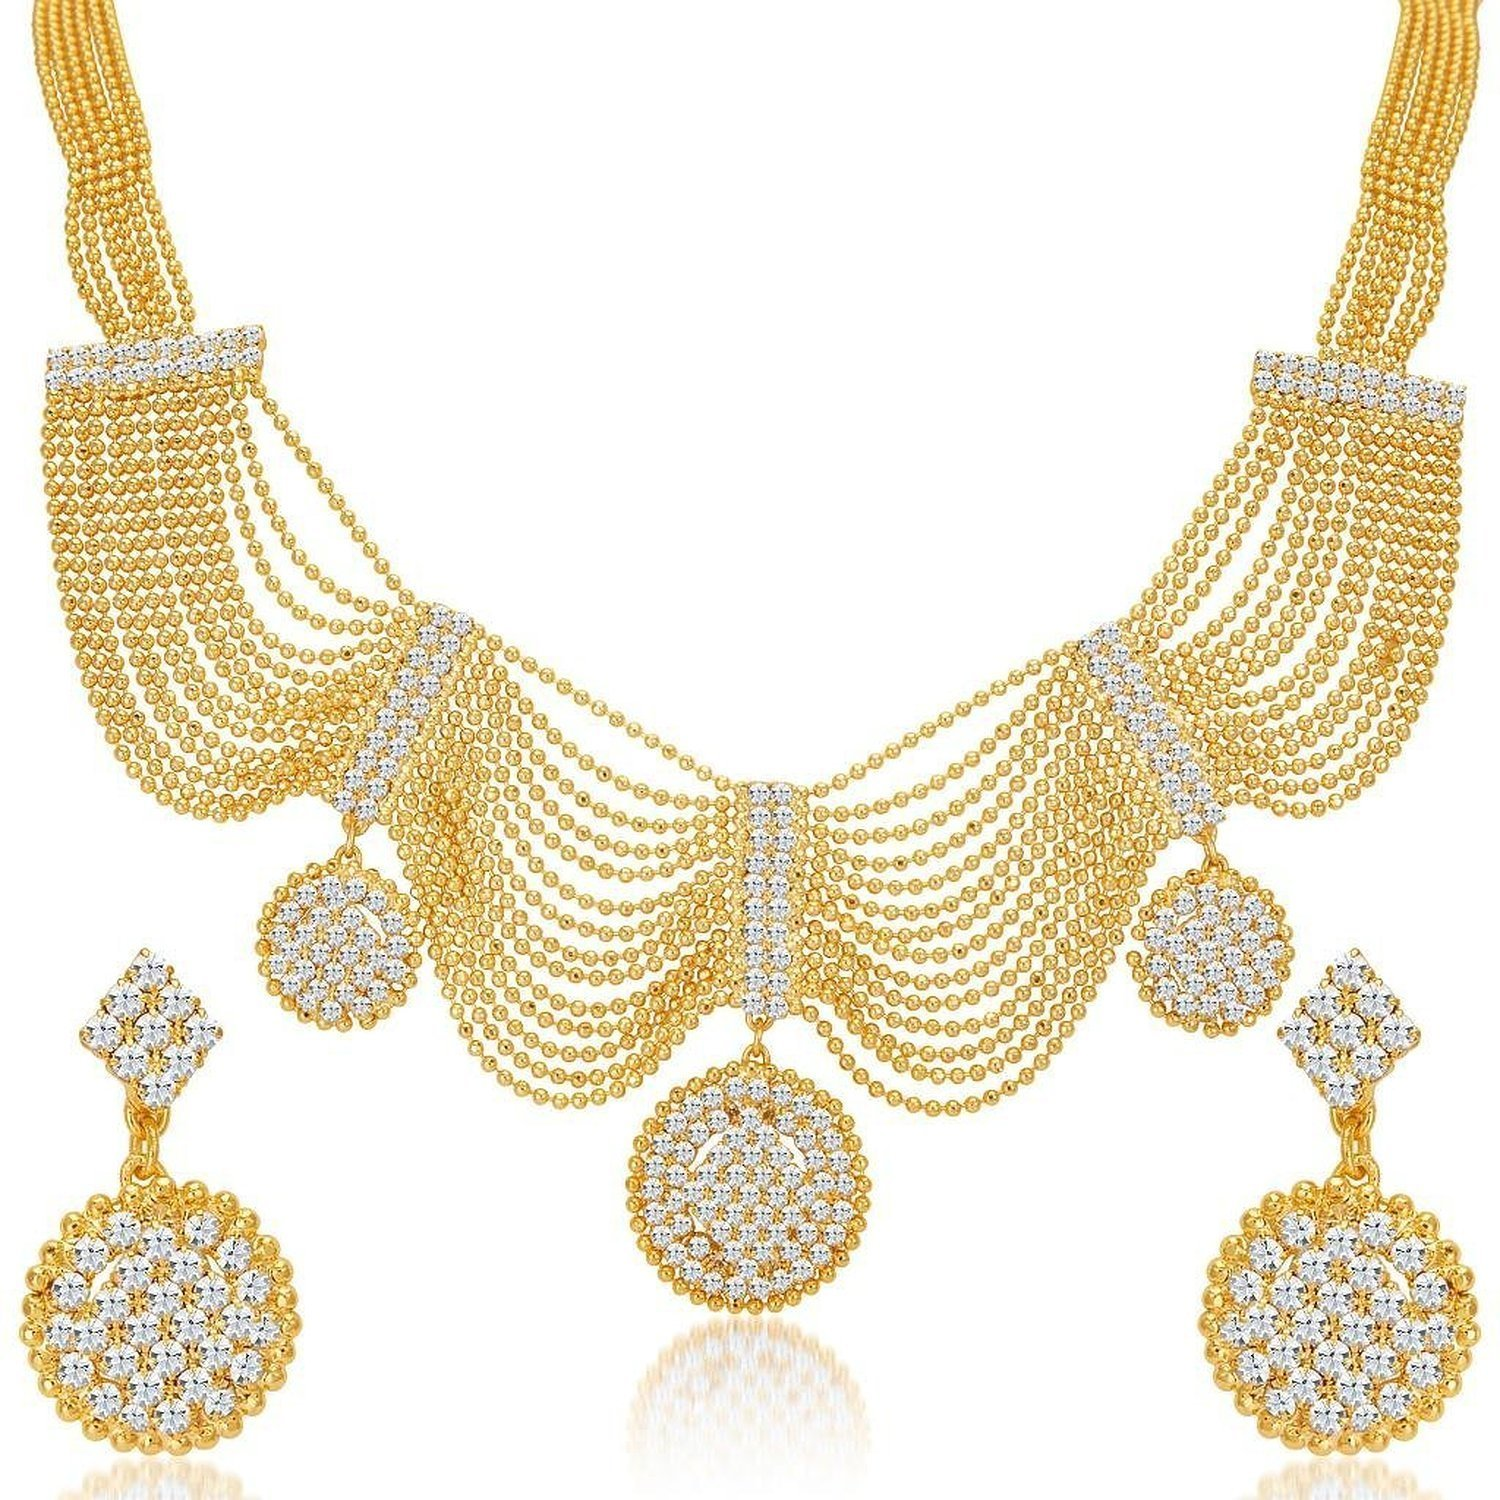 Rare Styles Fancy American Diamond Fashion Jewelry Necklace and Earring Set